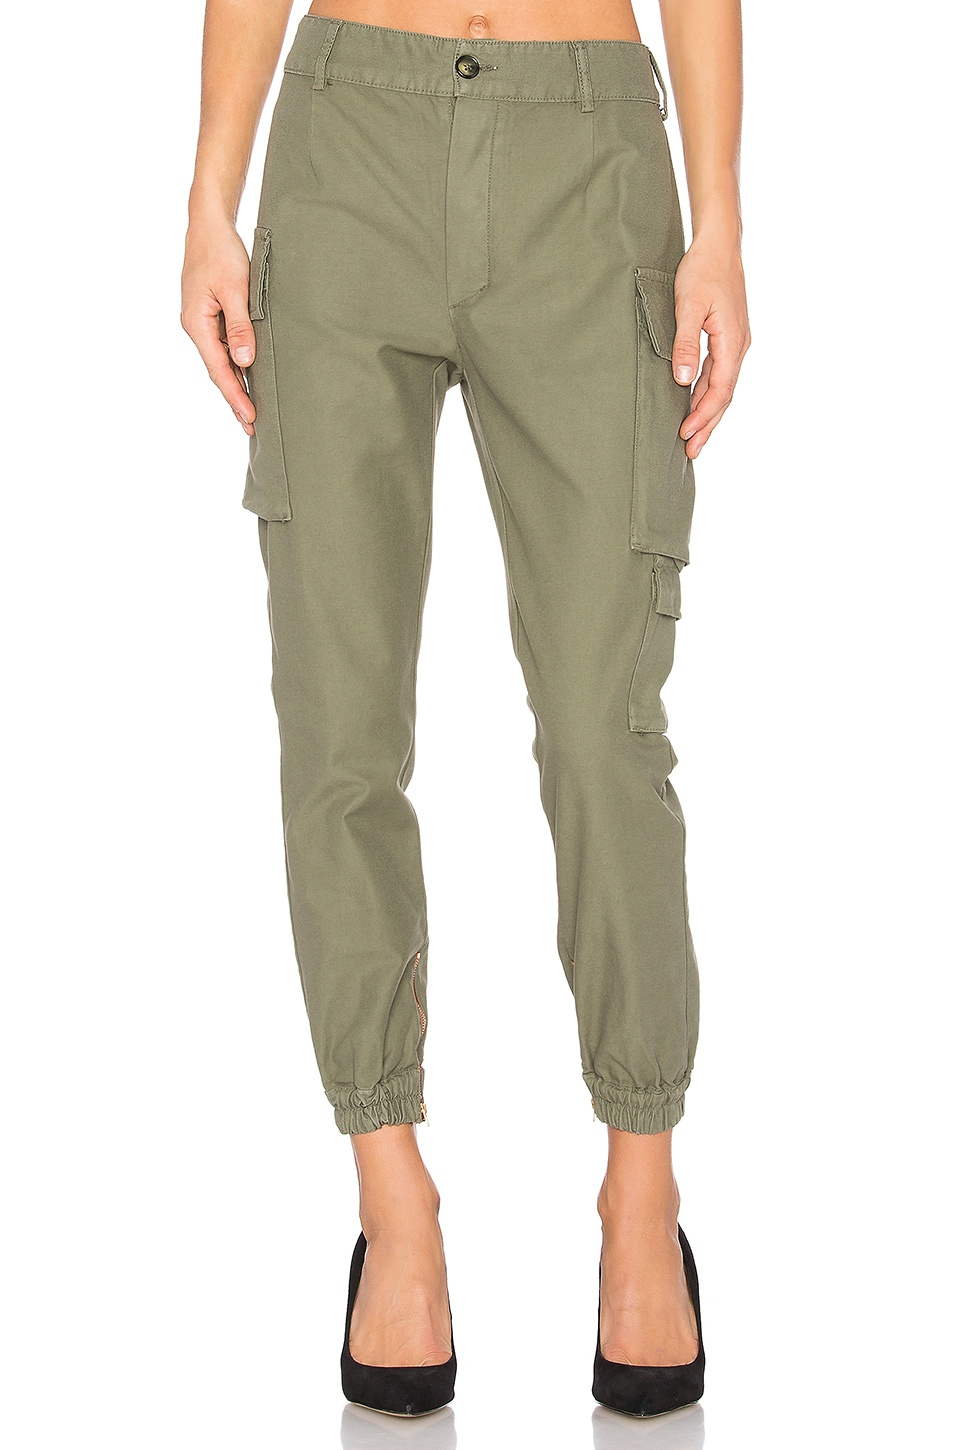 Military Cargo Pant by Etienne Marcel